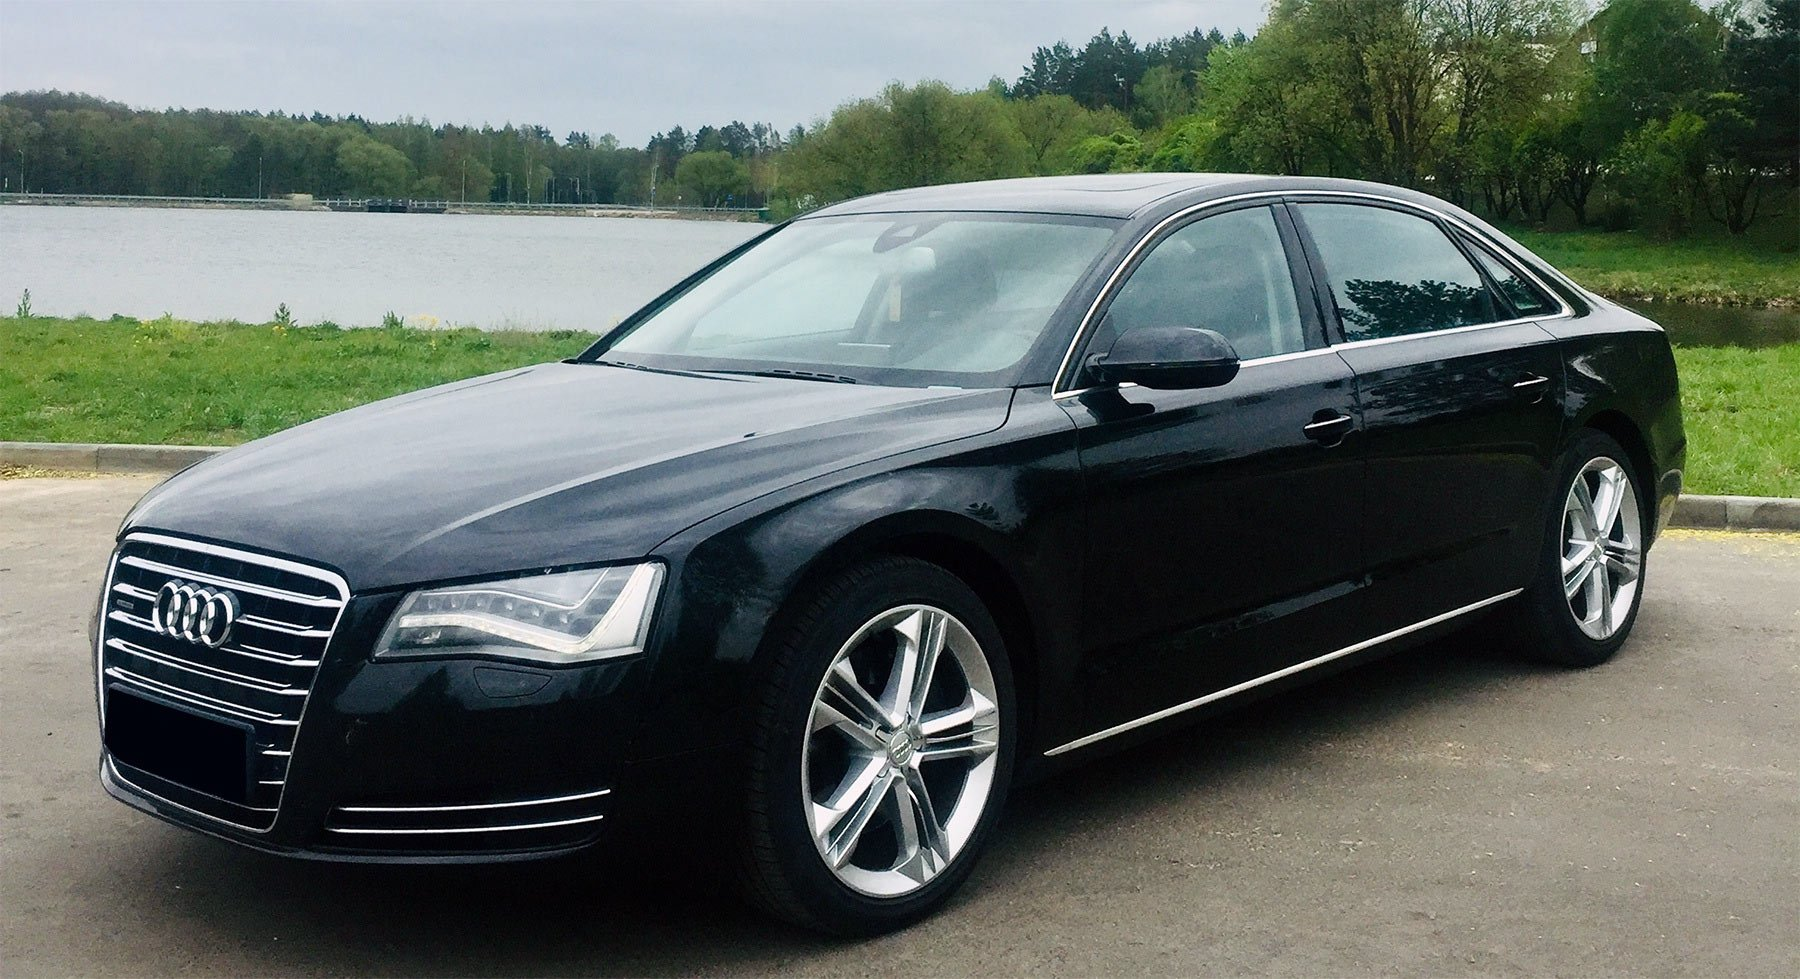 Audi A8 Long for comfort